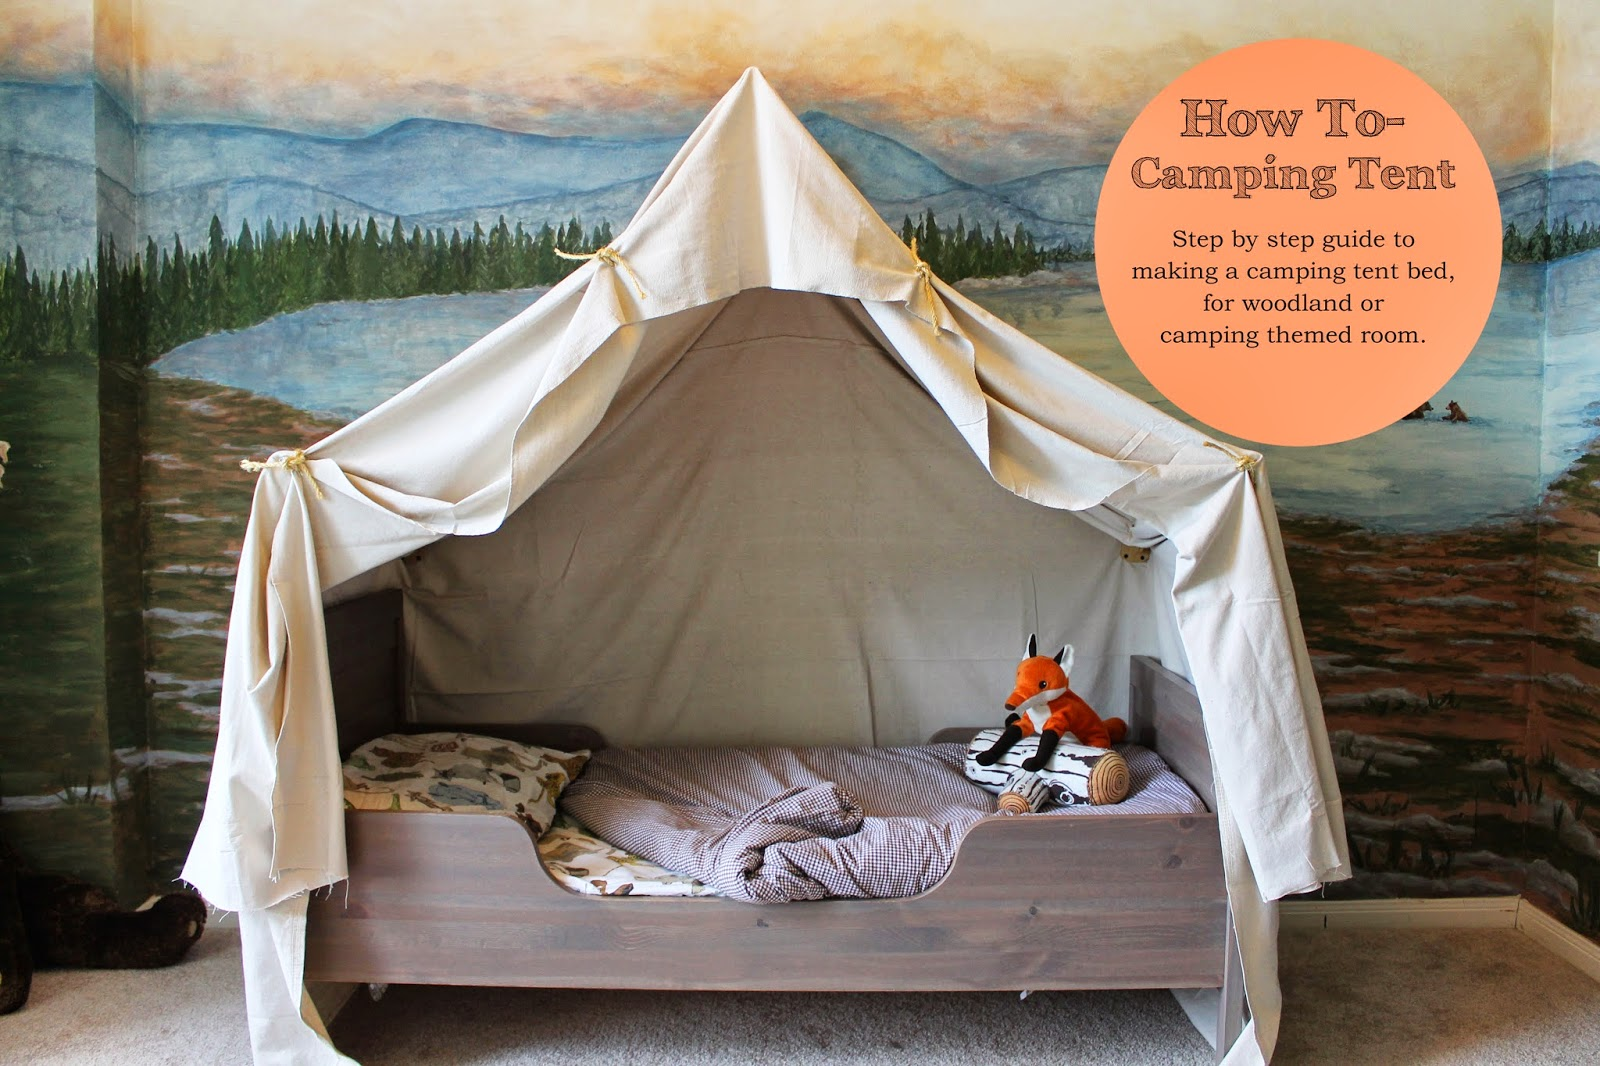 How To- C&ing Tent Bed & The ragged wren : How To- Camping Tent Bed